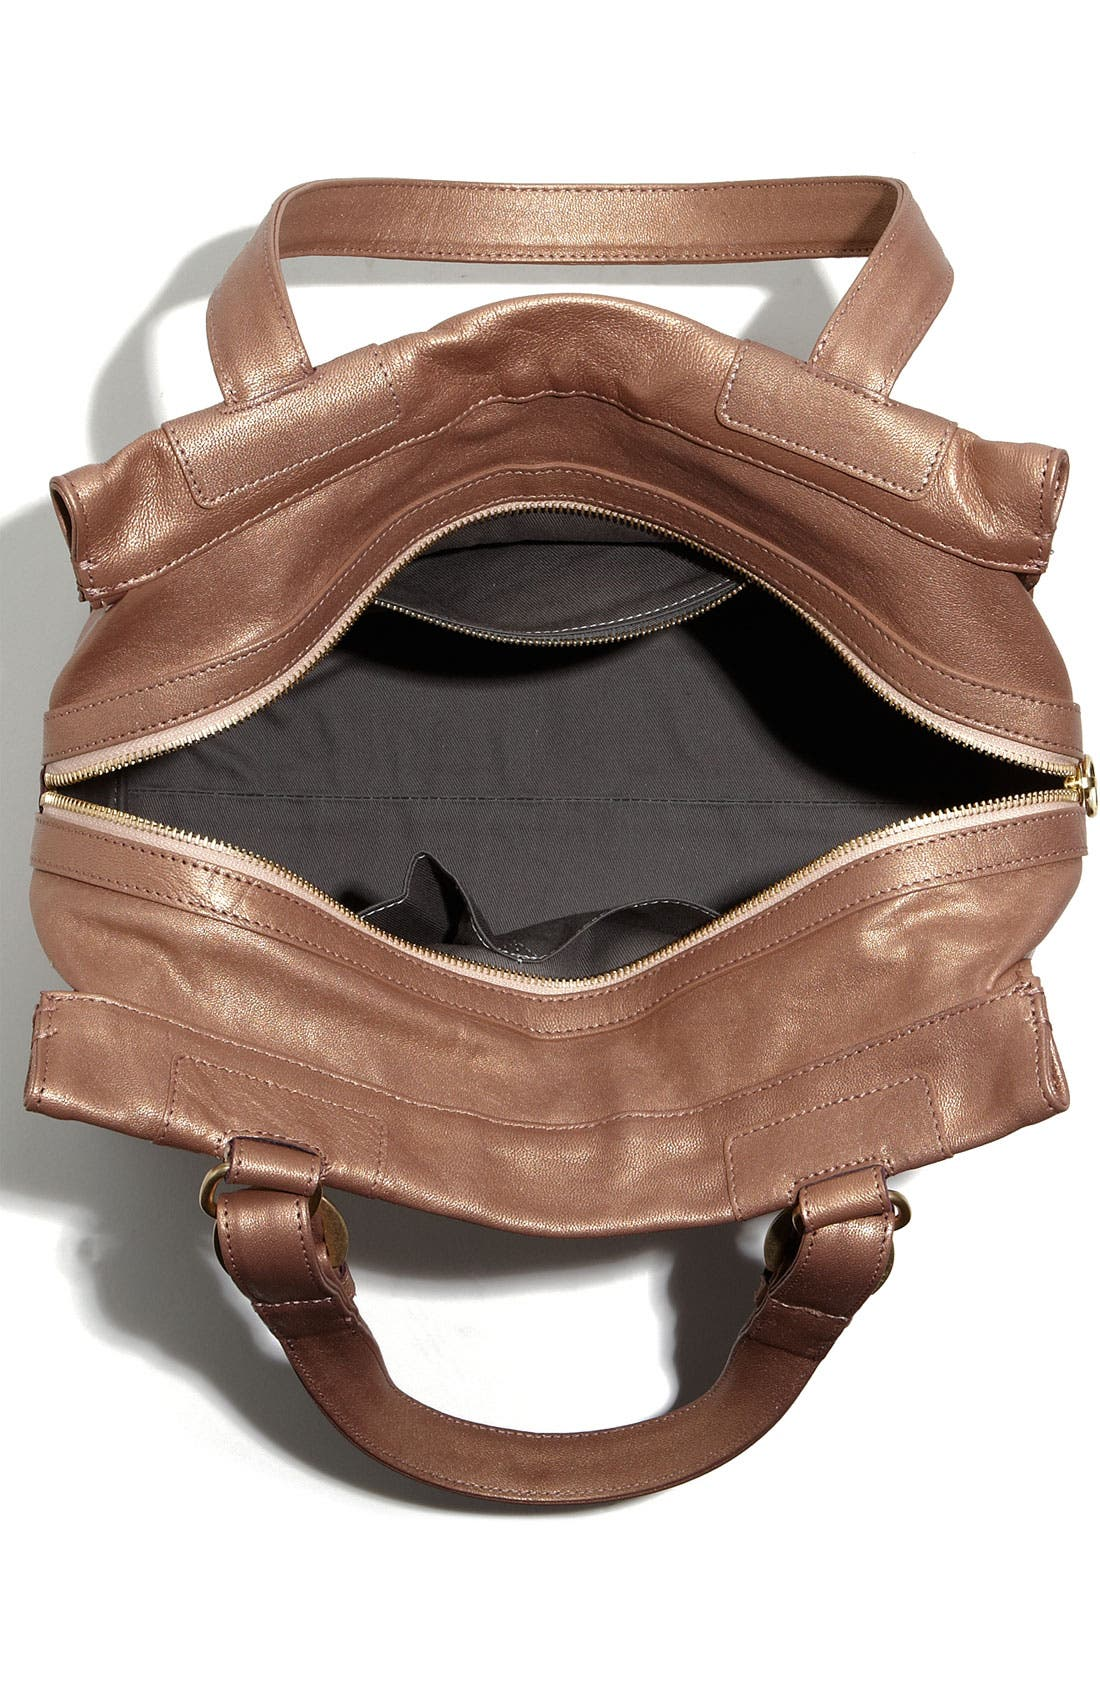 Alternate Image 3  - See By Chloé 'Poya Metallic Vintage' Leather Shoulder Bag